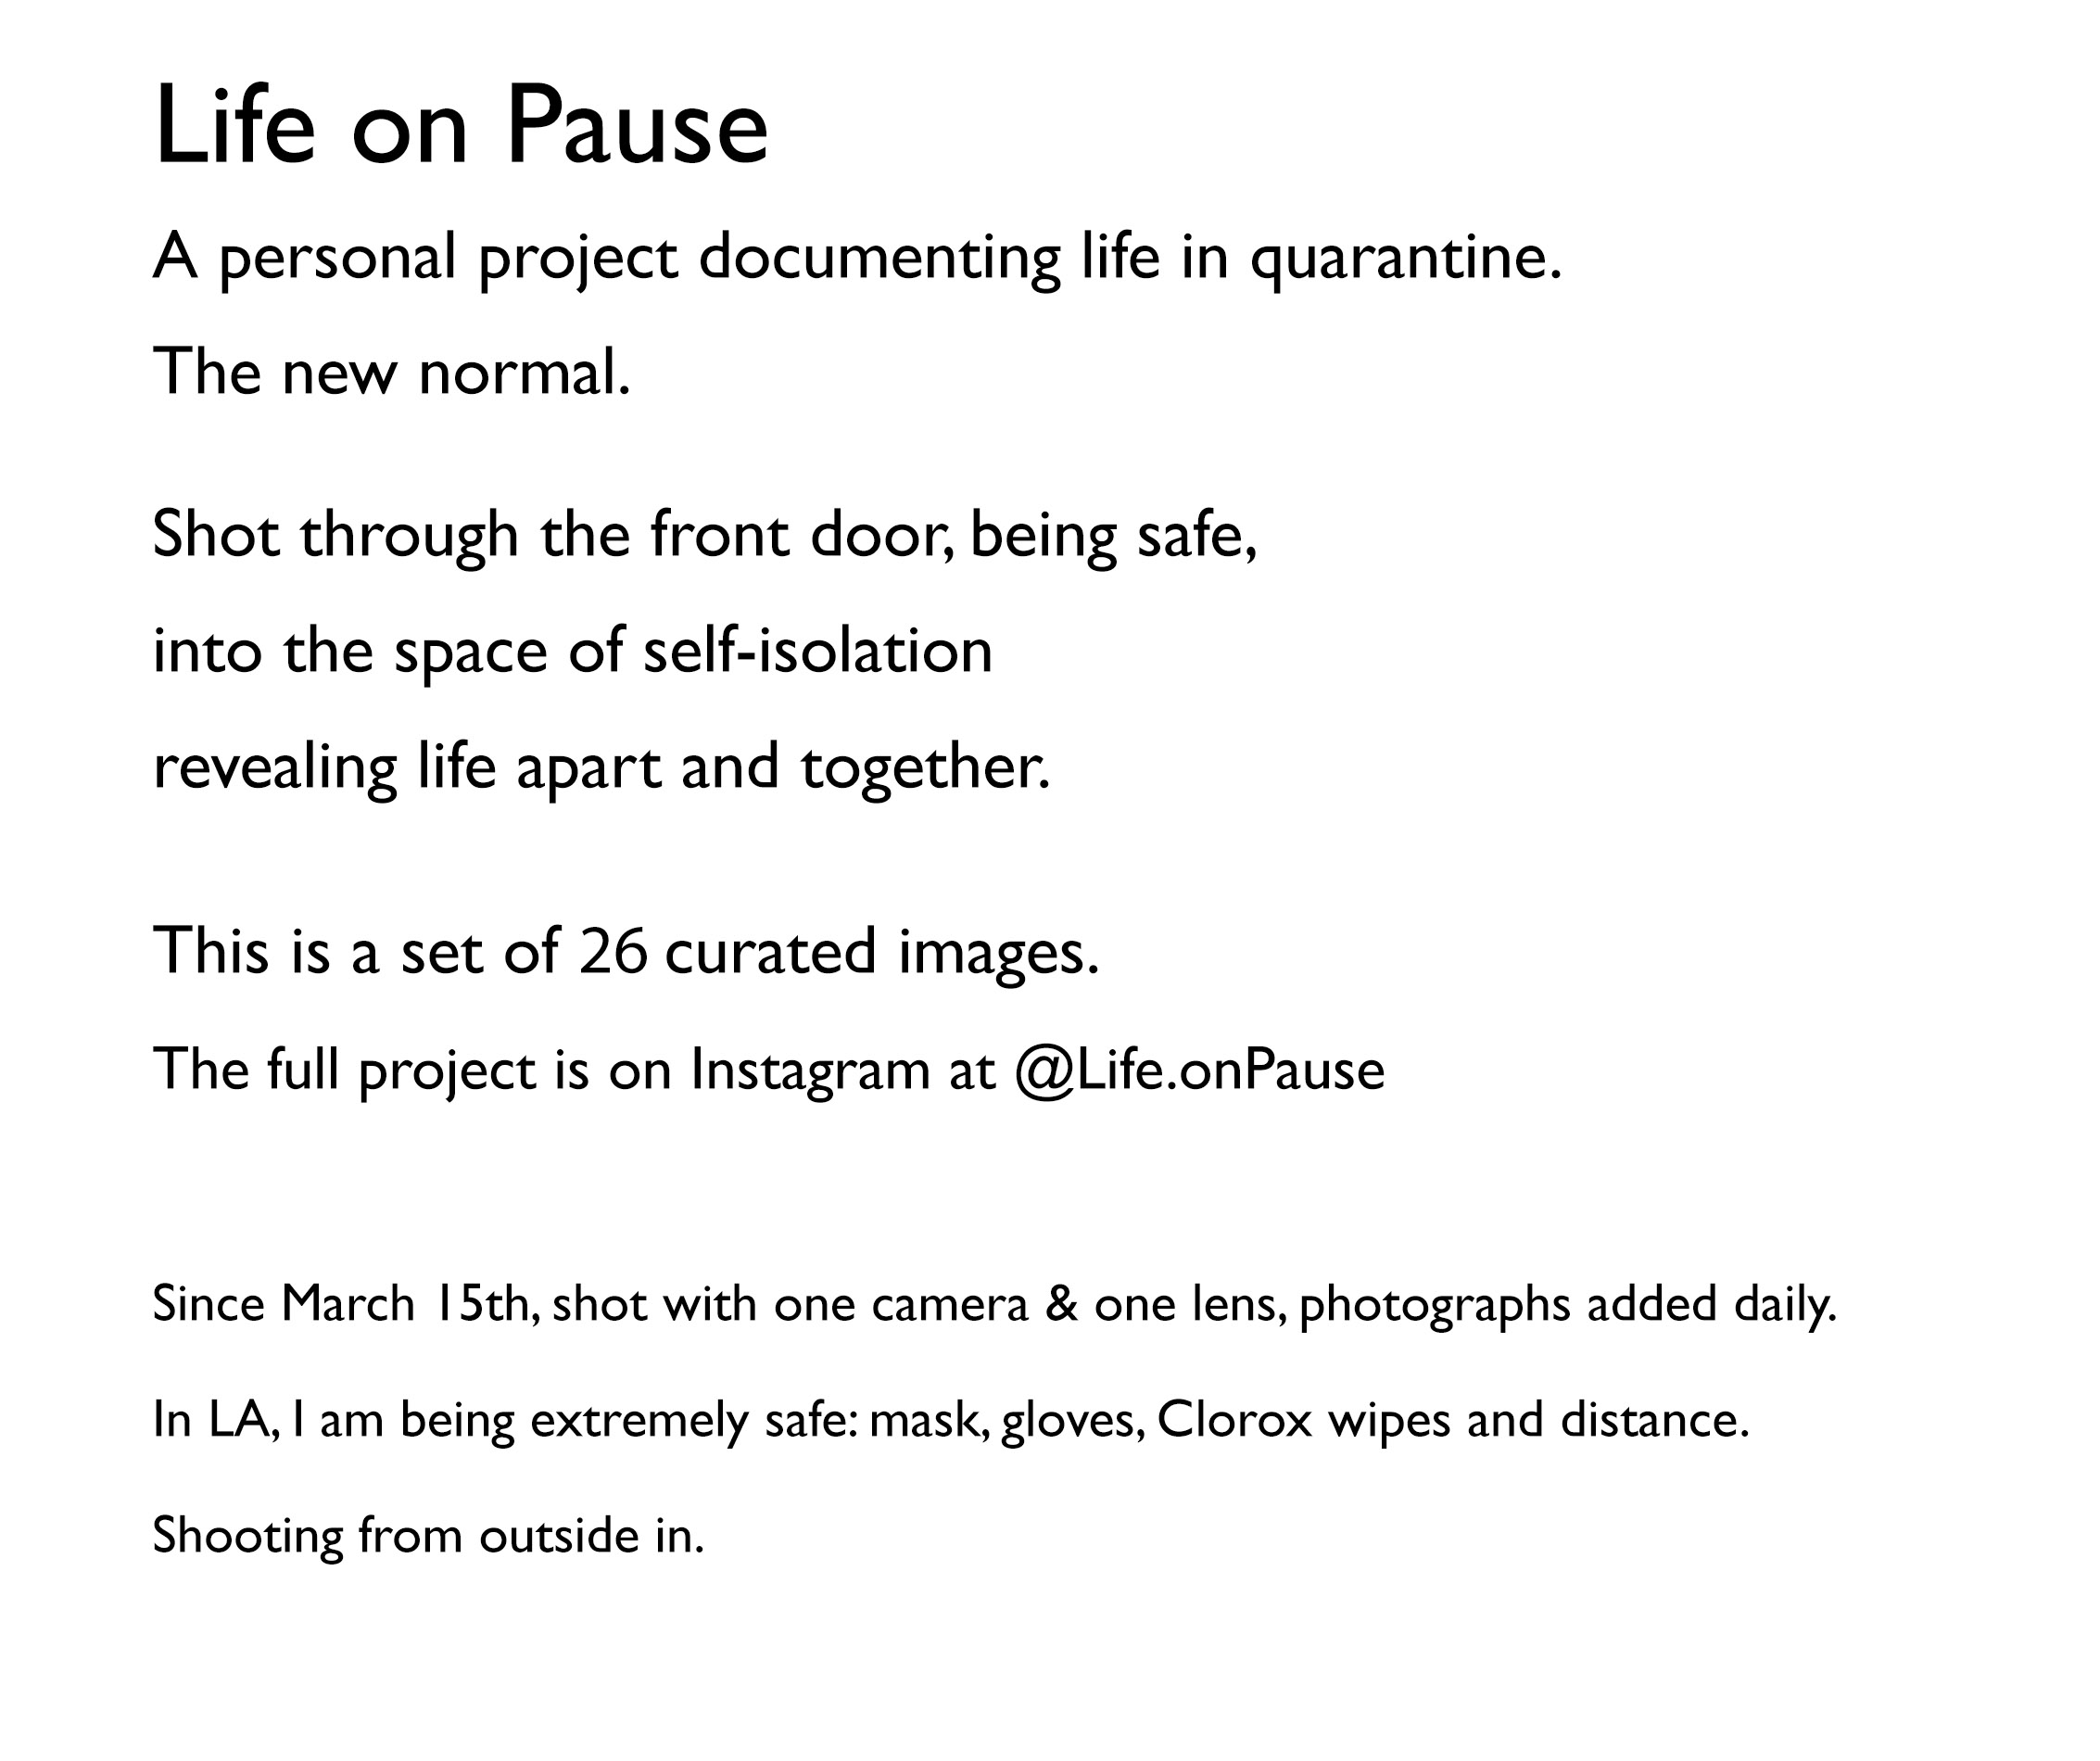 LifeonPause6